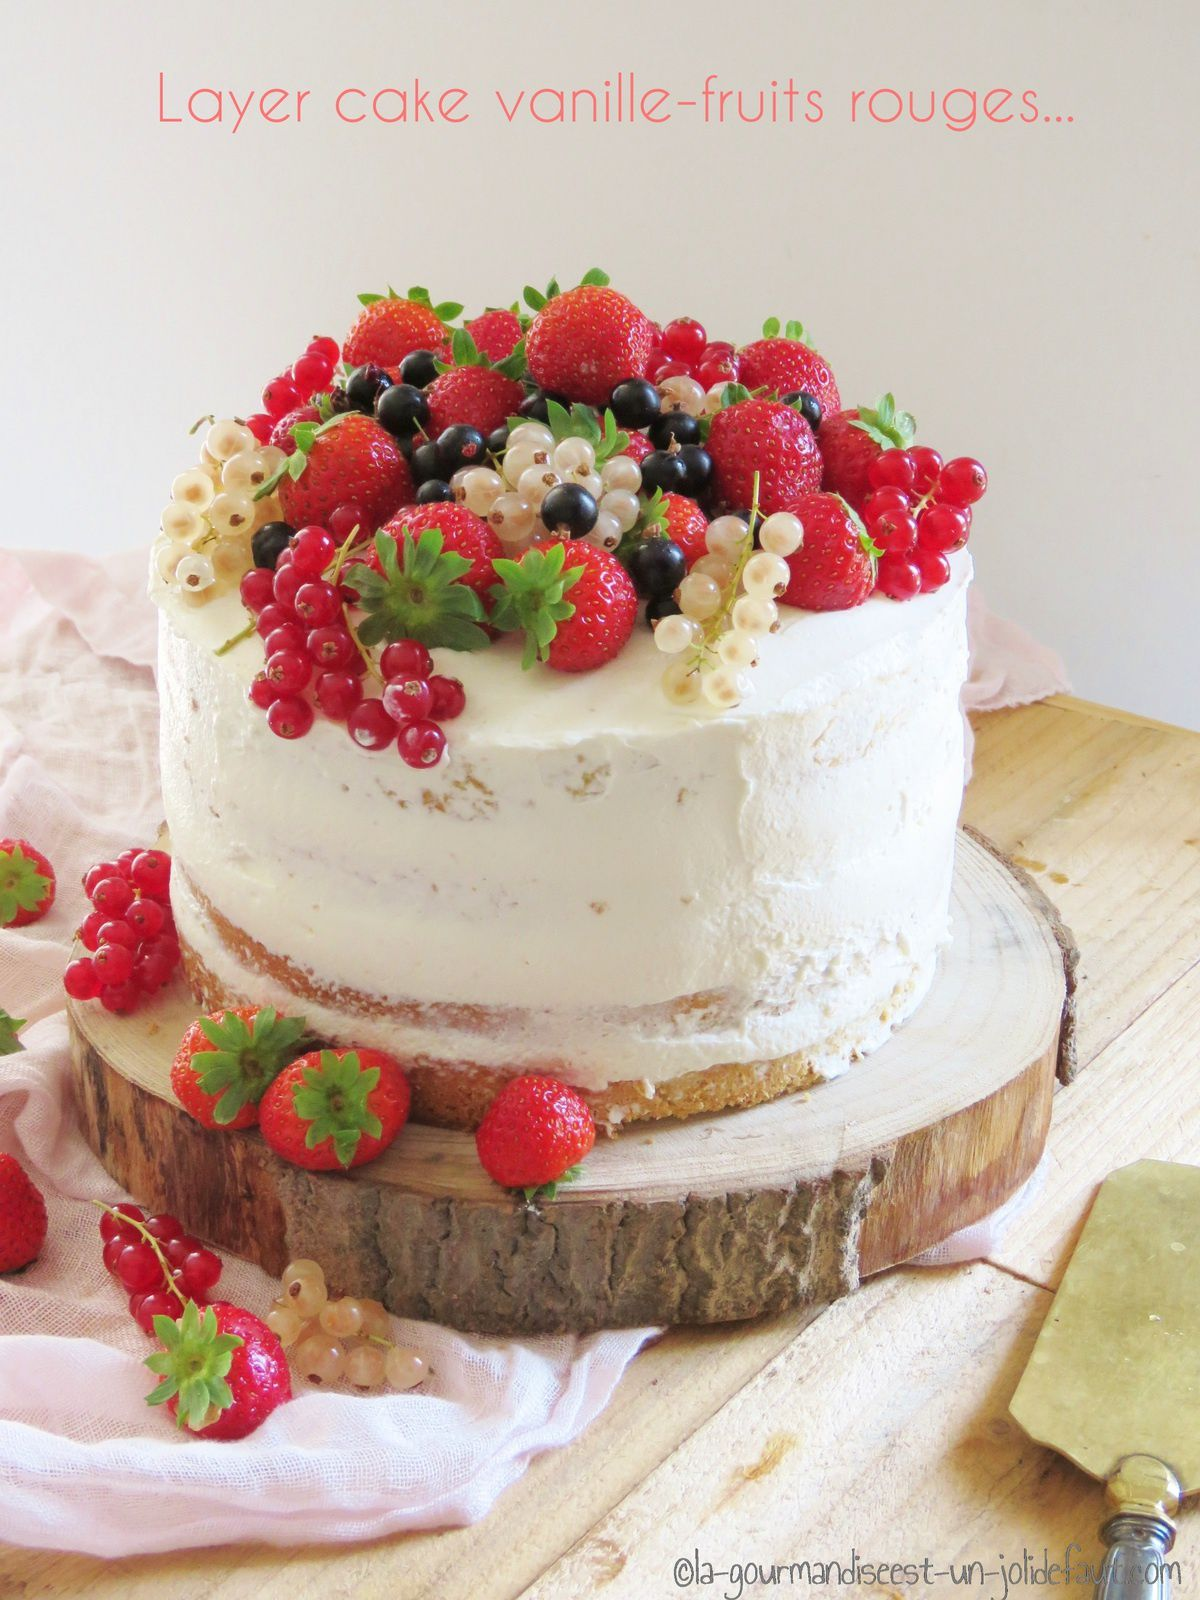 Decoration Gateau Fraise Layer Cake Vanille-fruits Rouges - La Gourmandise Est Un